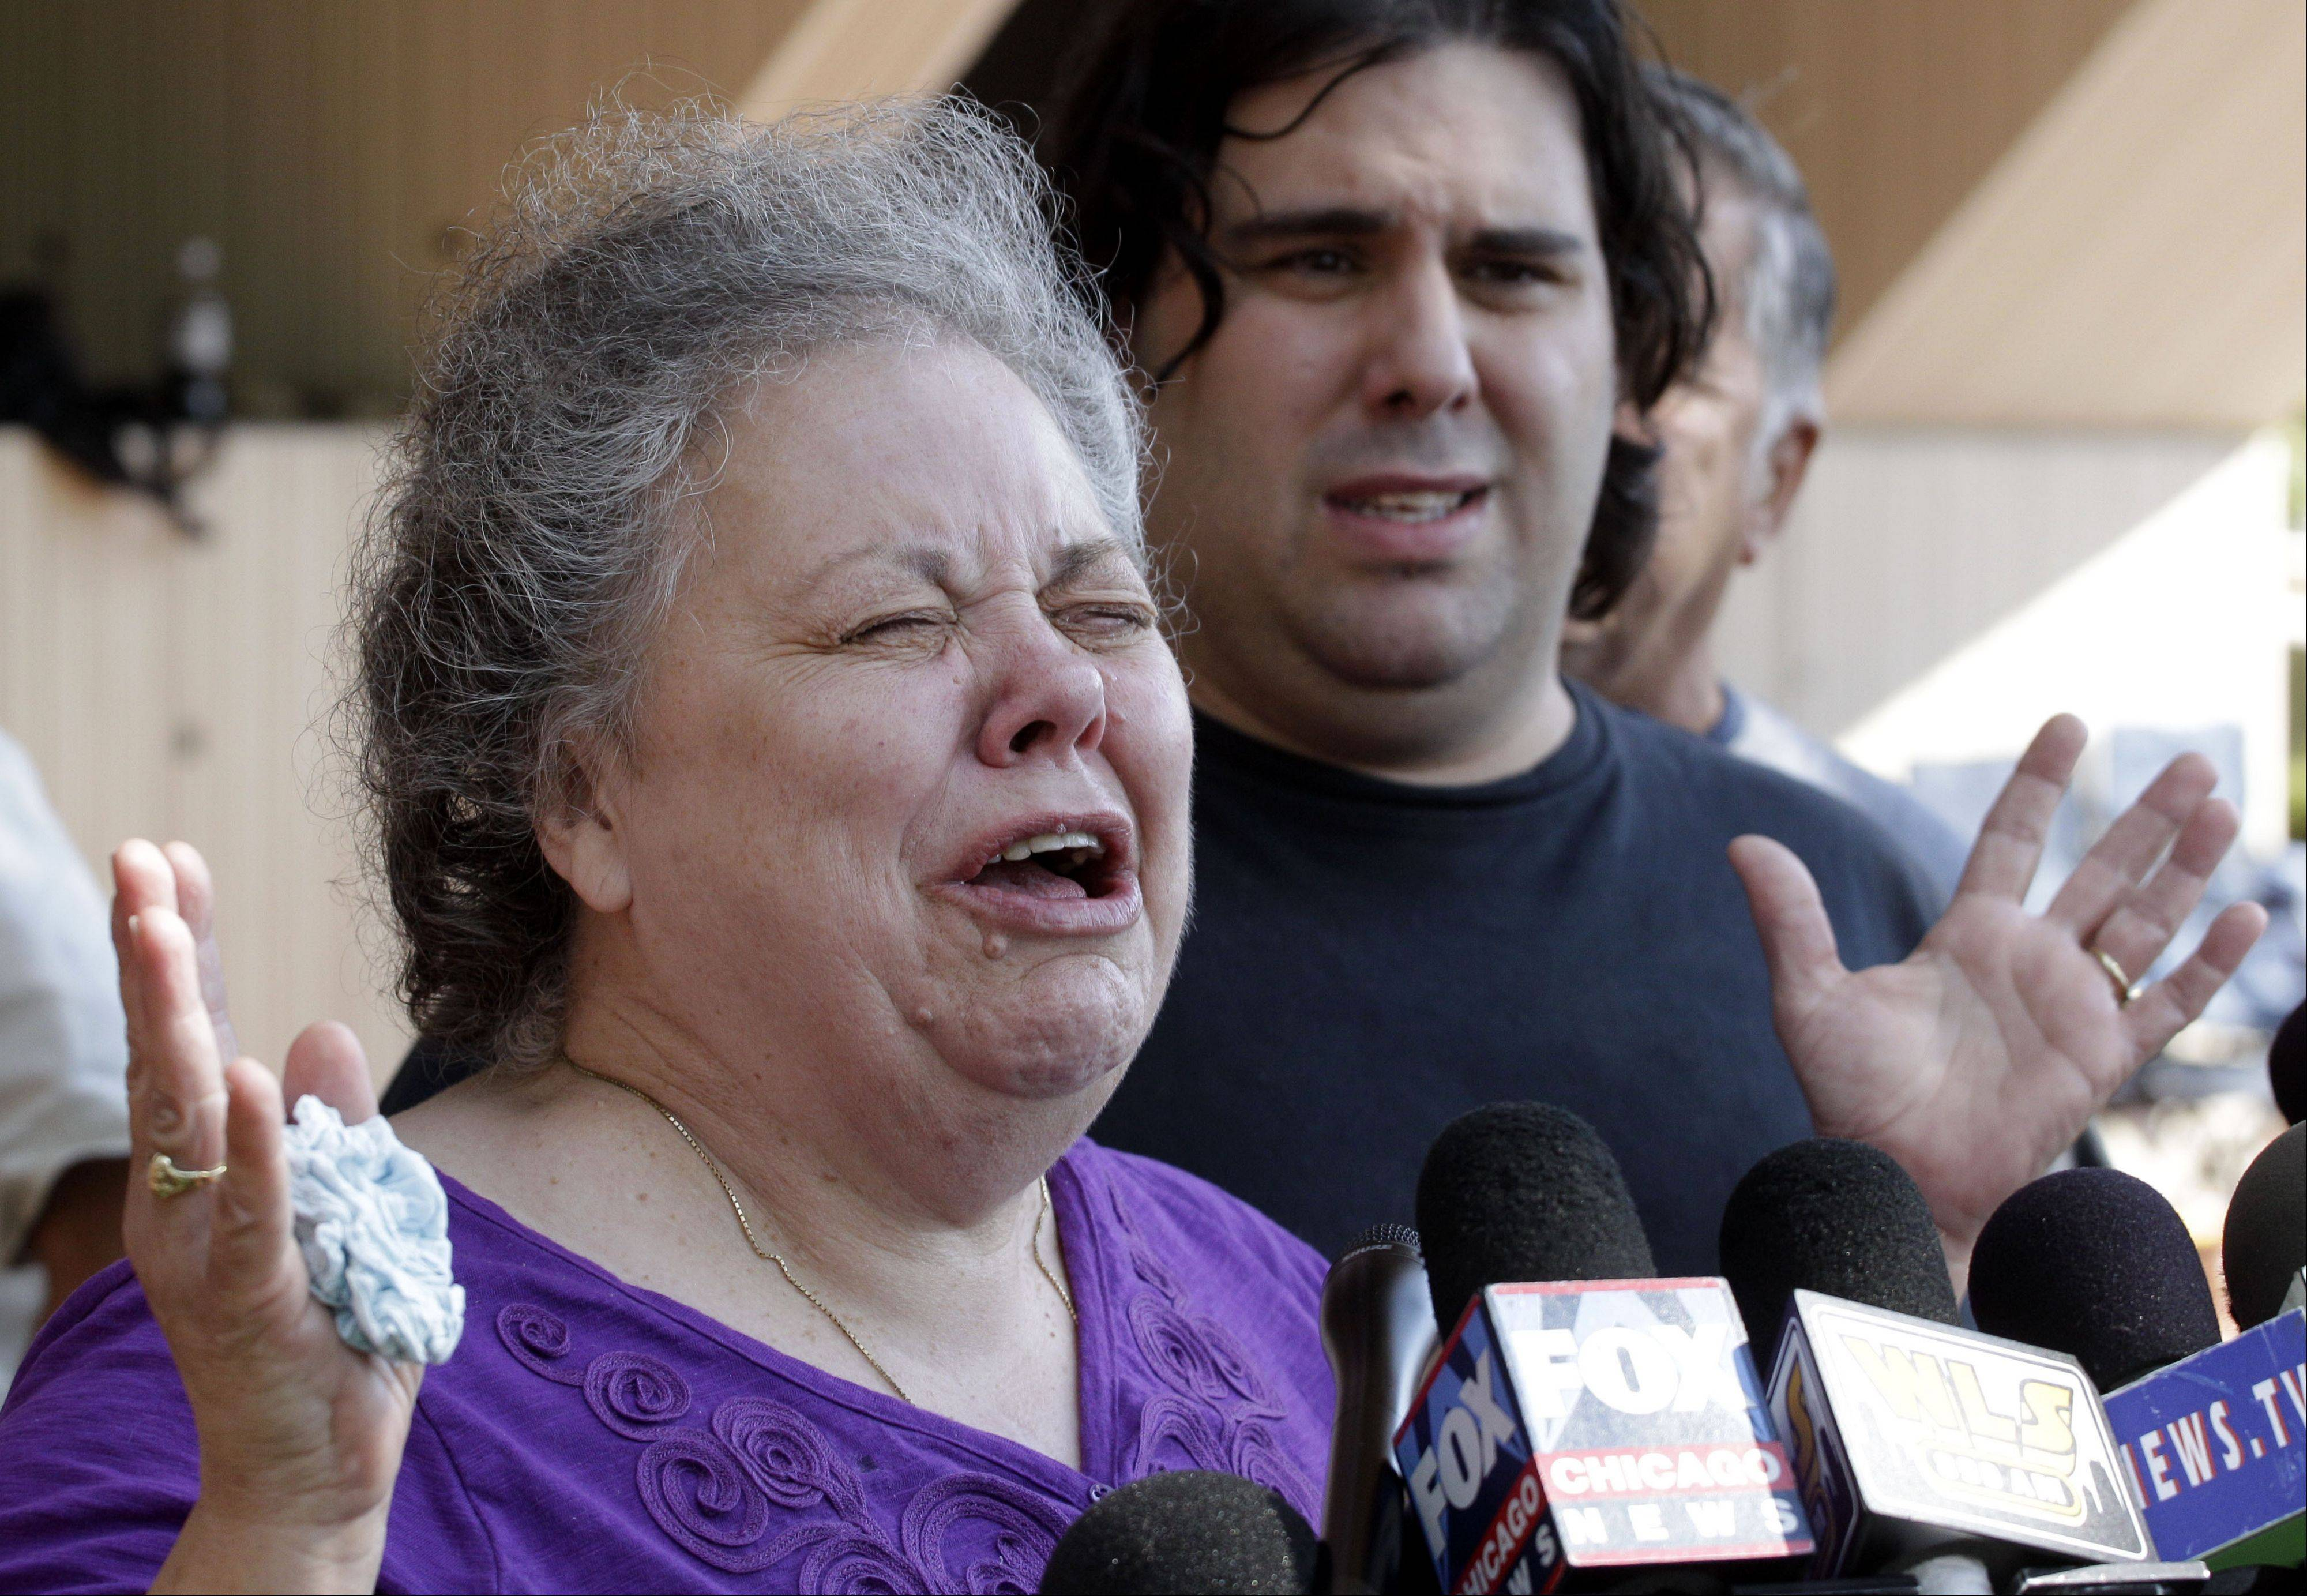 Marcia Savio, step-mother of Kathleen Savio cries outside the Will County Courthouse after word that former Bolingbrook police officer Drew Peterson was found guilty of murdering his third wife Kathleen Savio Thursday, Sept. 6, 2012, in Joliet, Ill. Marcia Savio is accompanied by Kathleen Savio's half-brother Nicholas Savio.